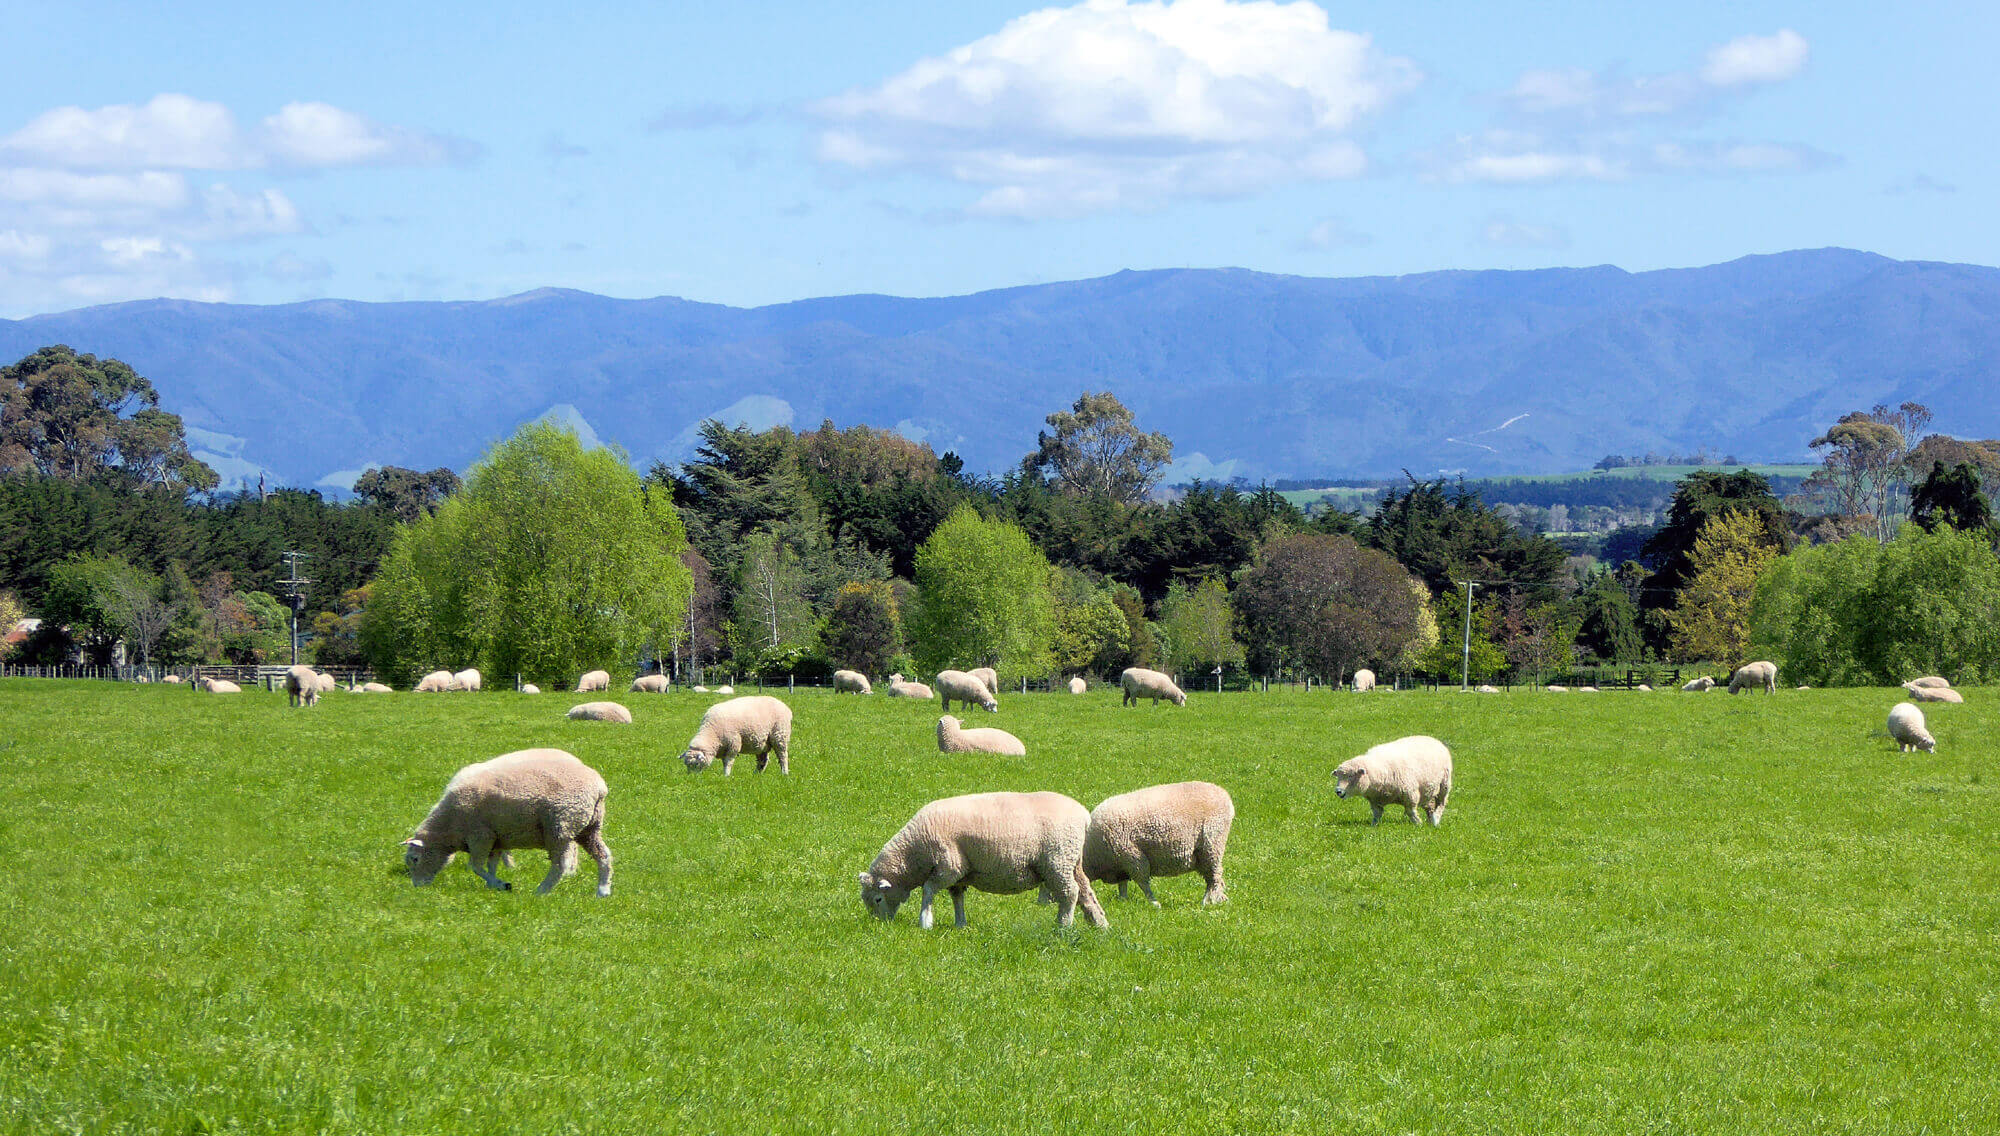 Recently shorn Romney sheep grazing peacefully on a farm south of Martinborough, South Wairarapa. New Zealand's first sheep run was established at nearby Wharekaka, in May 1844.